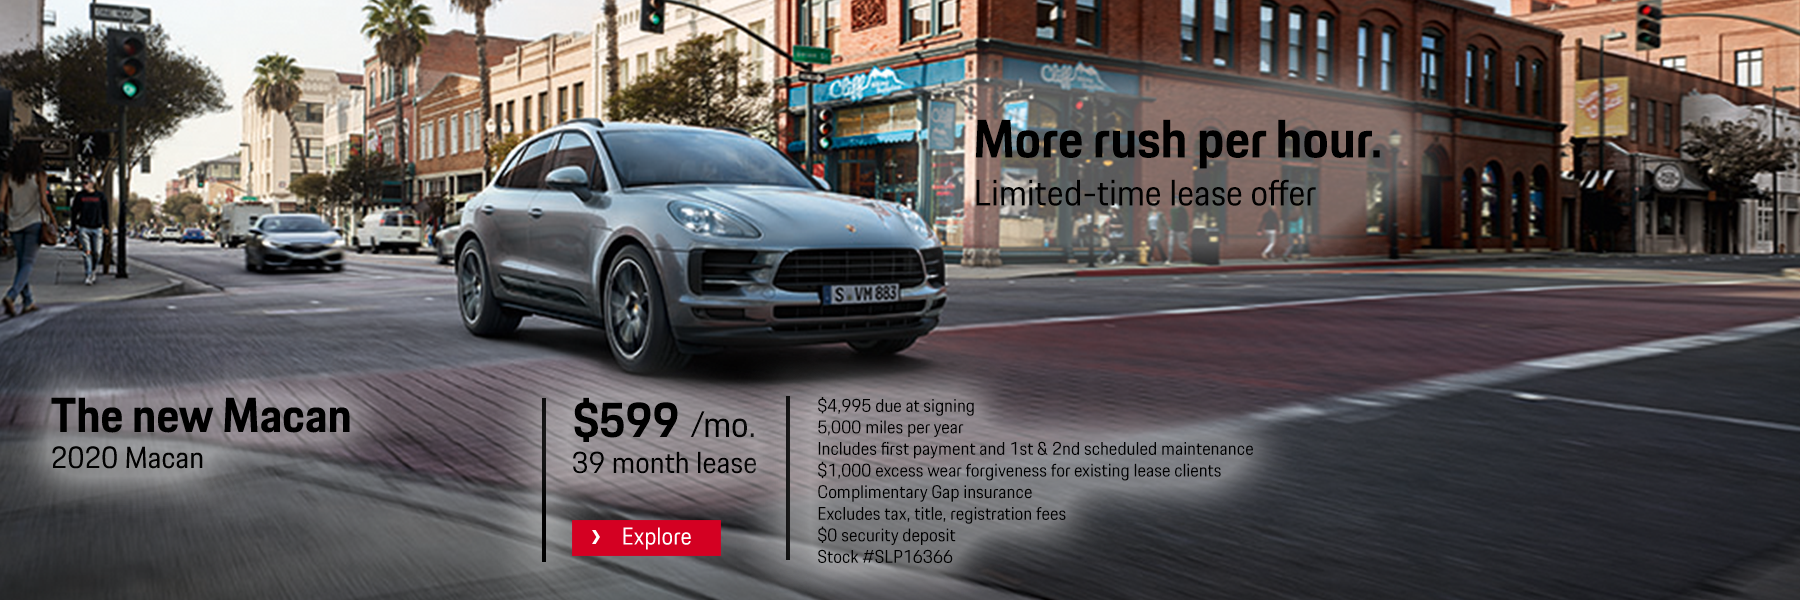 October_Porsche_2020-macan_STOCKslp16366-599